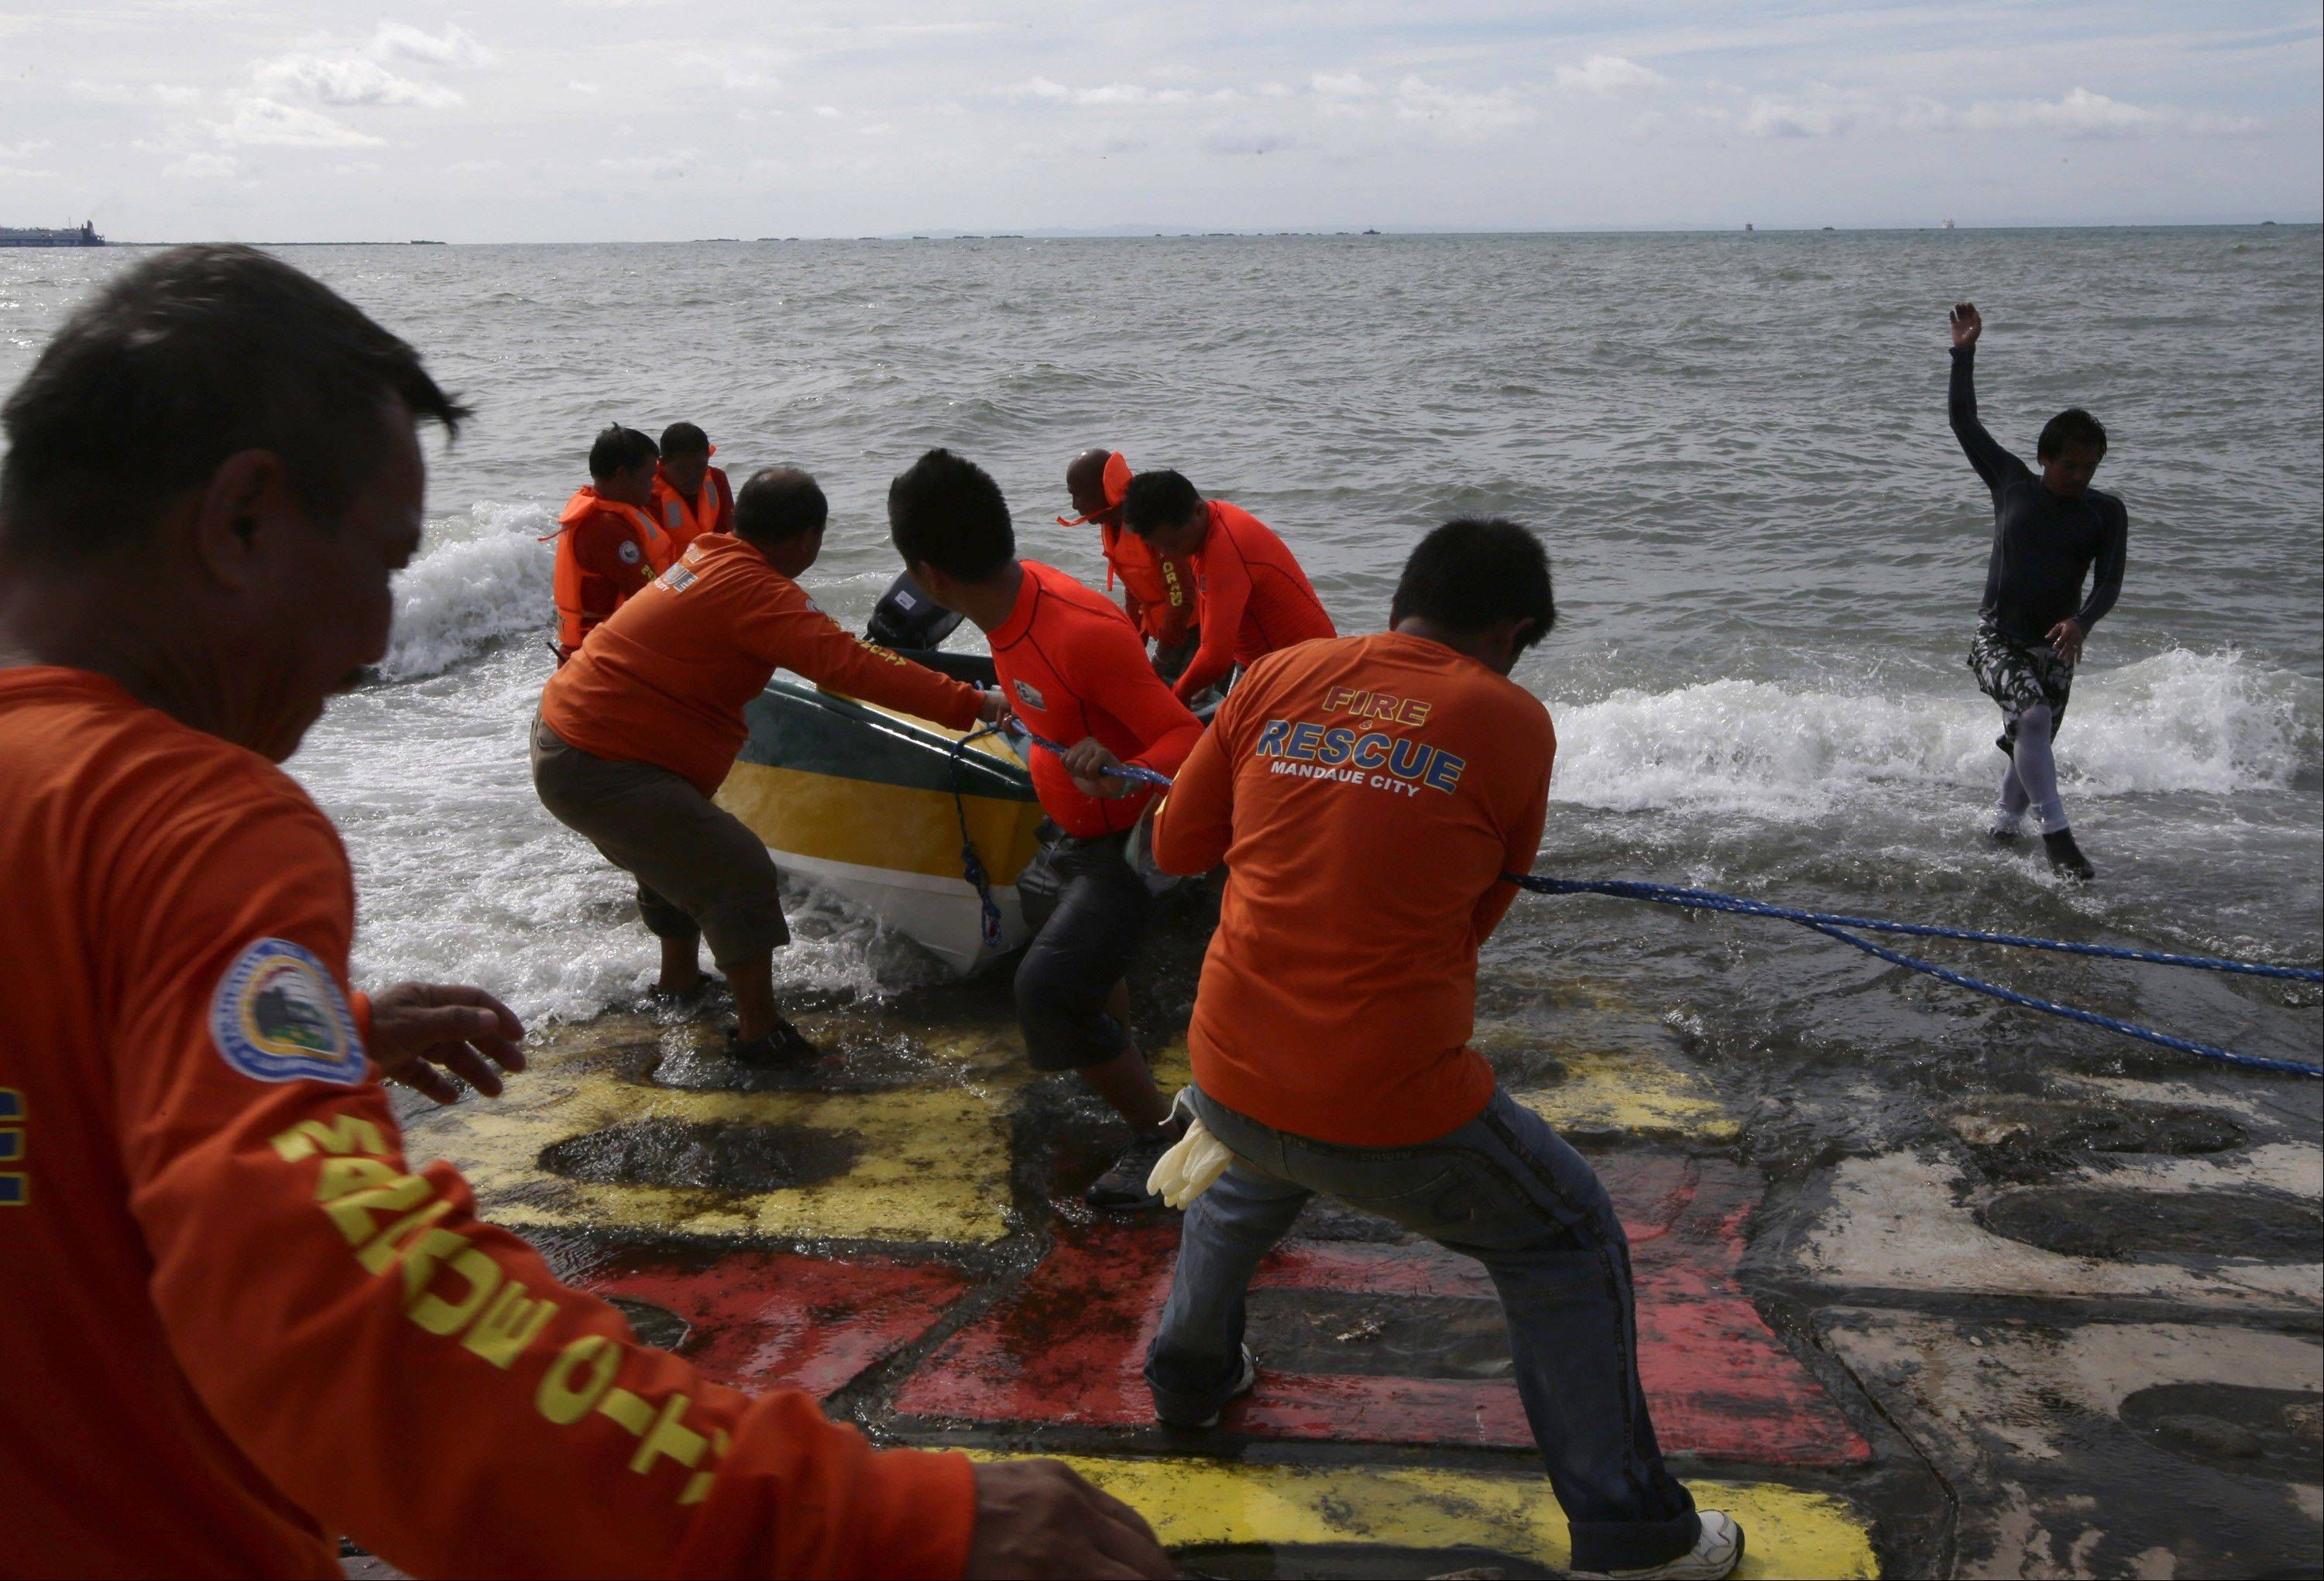 Volunteer divers prepare their rubber to help in the search and rescue operation off Talisay coast, Cebu province Sunday, Aug. 18, 2013 following Friday night's collision of the passenger ferry MV Thomas Aquinas and the cargo ship MV Sulpicio Express Siete in central Philippines.